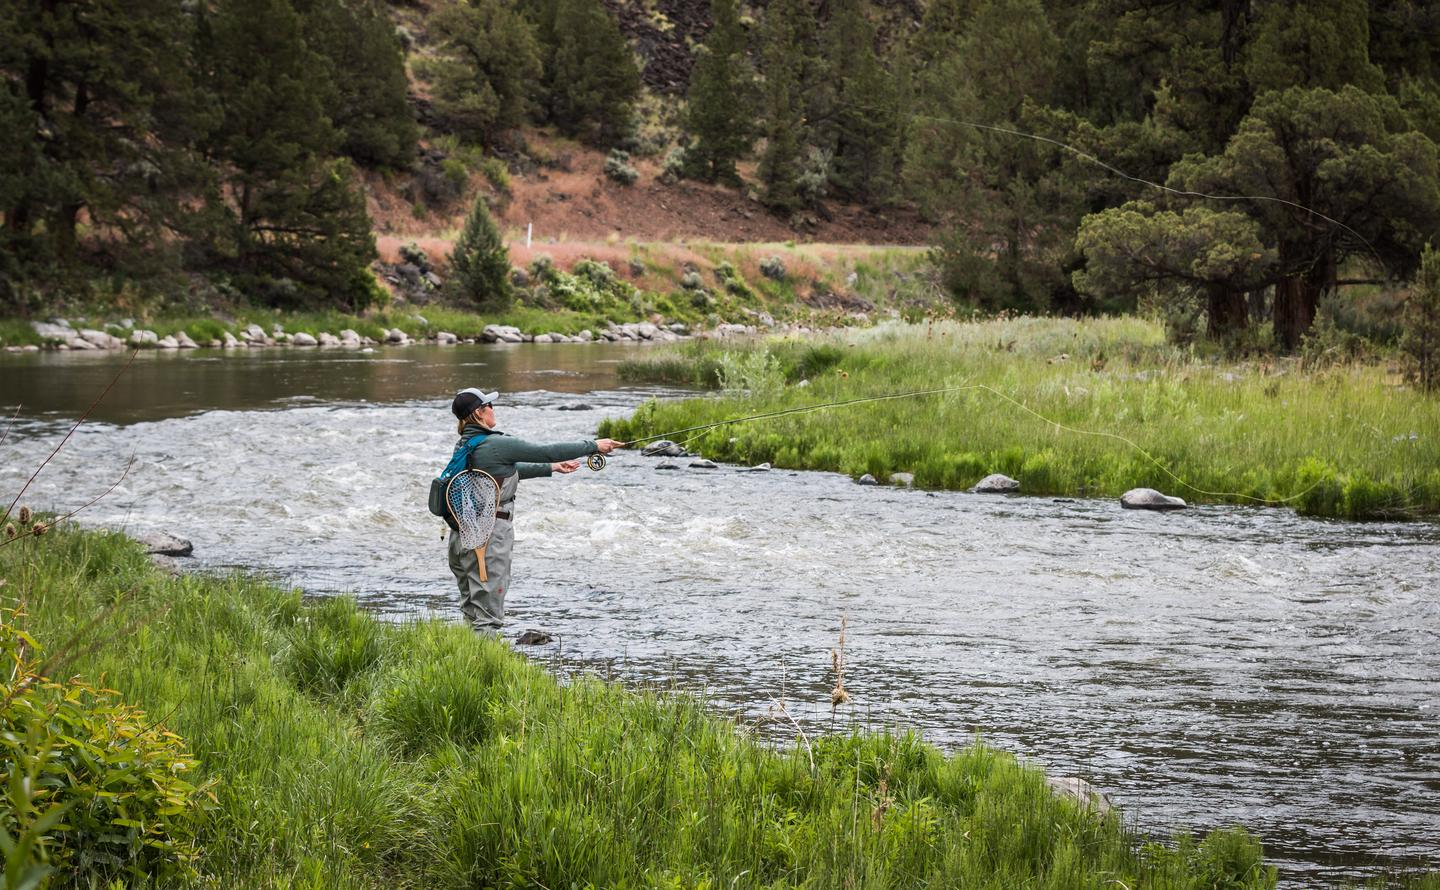 Fly-fishing near the Post Pile Campground, Crooked Wild and Scenic River